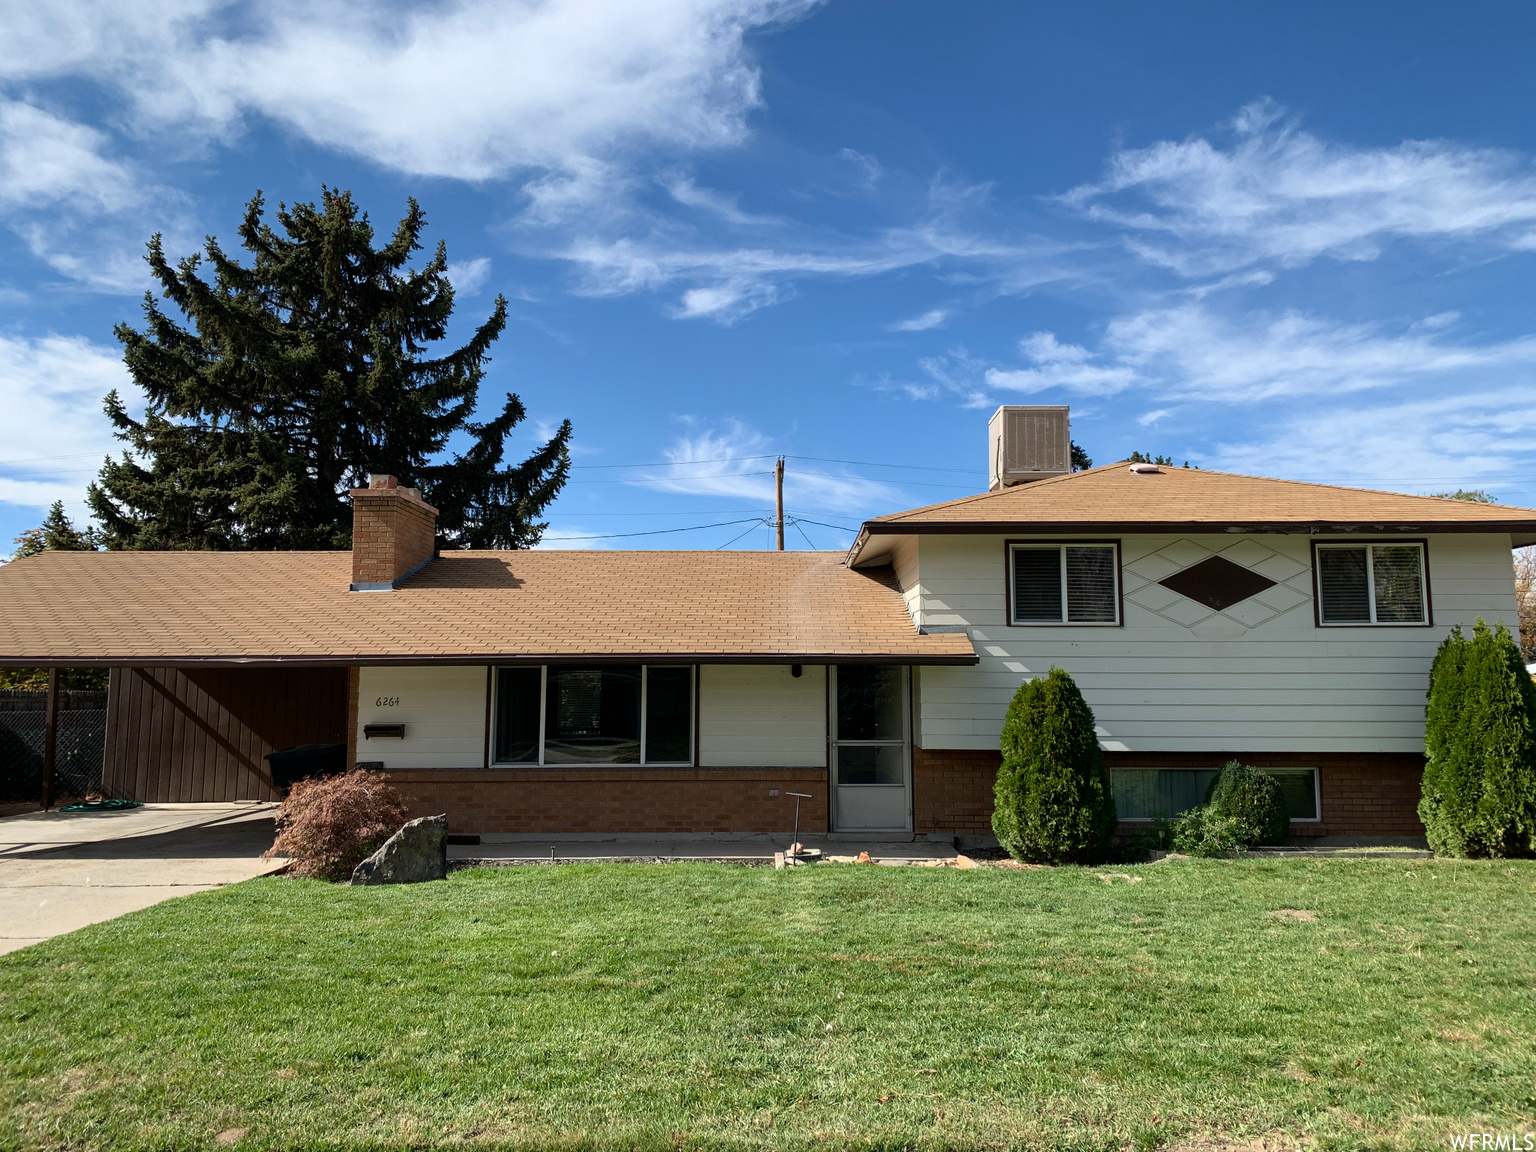 6264 S TURPIN ST, Salt Lake City UT 84107